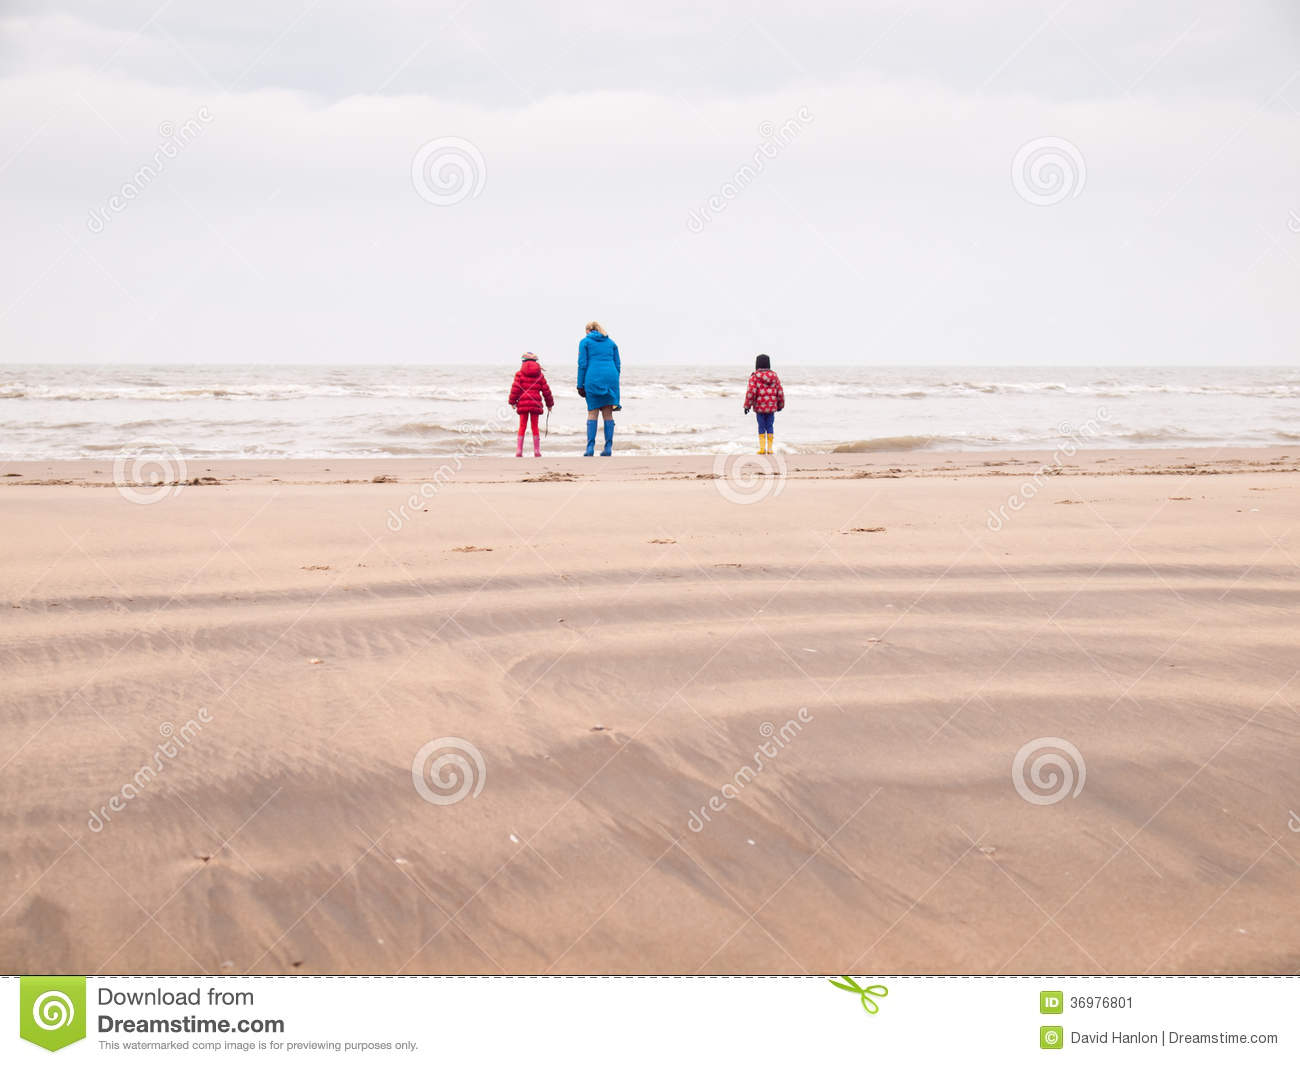 8e374ba58b Woman with small boy and girl in winter clothing and rubber boots on a winter  beach looking out to sea